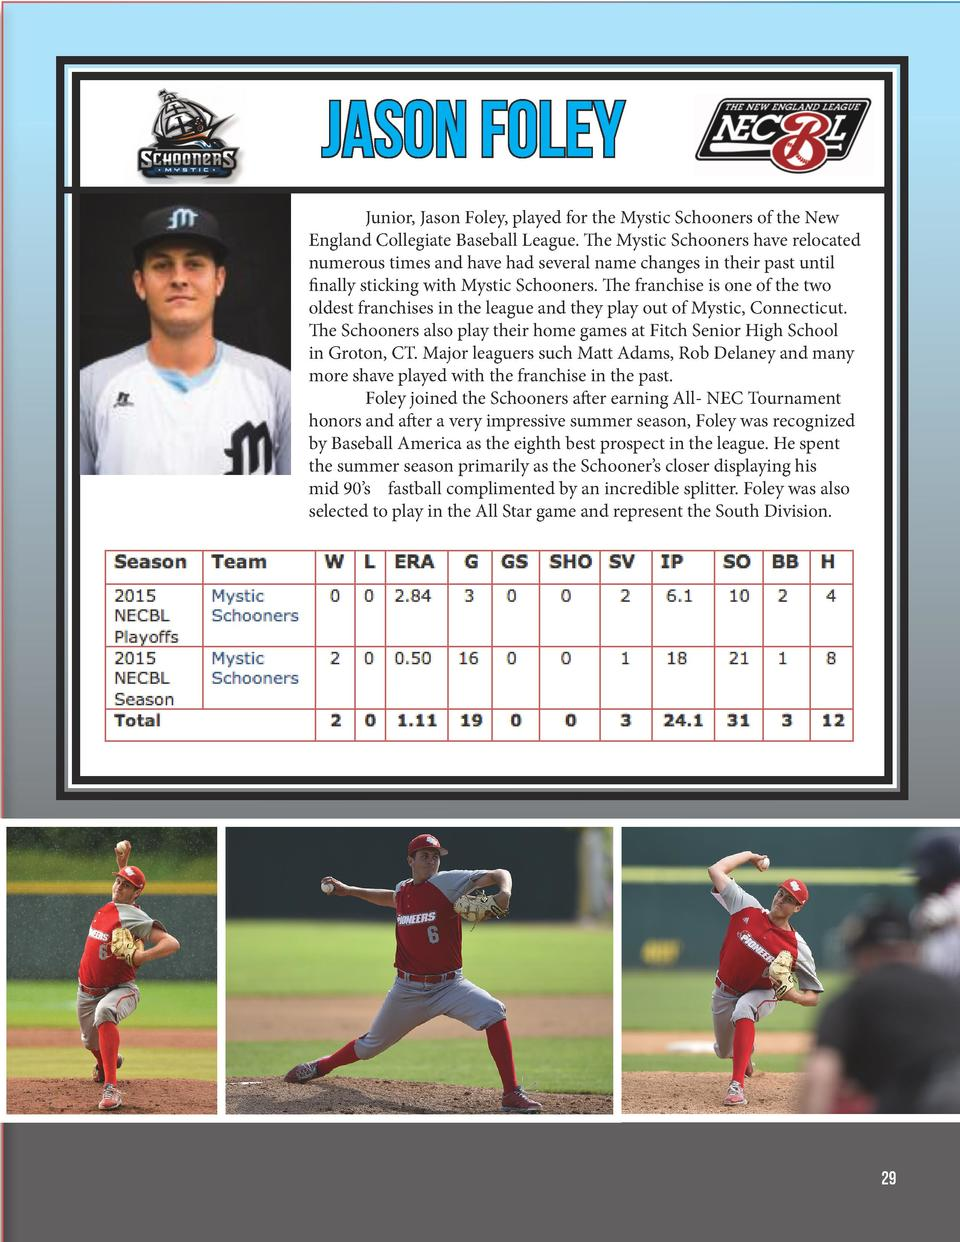 Jason Foley   Junior, Jason Foley, played for the Mystic Schooners of the New England Collegiate Baseball League. The Myst...